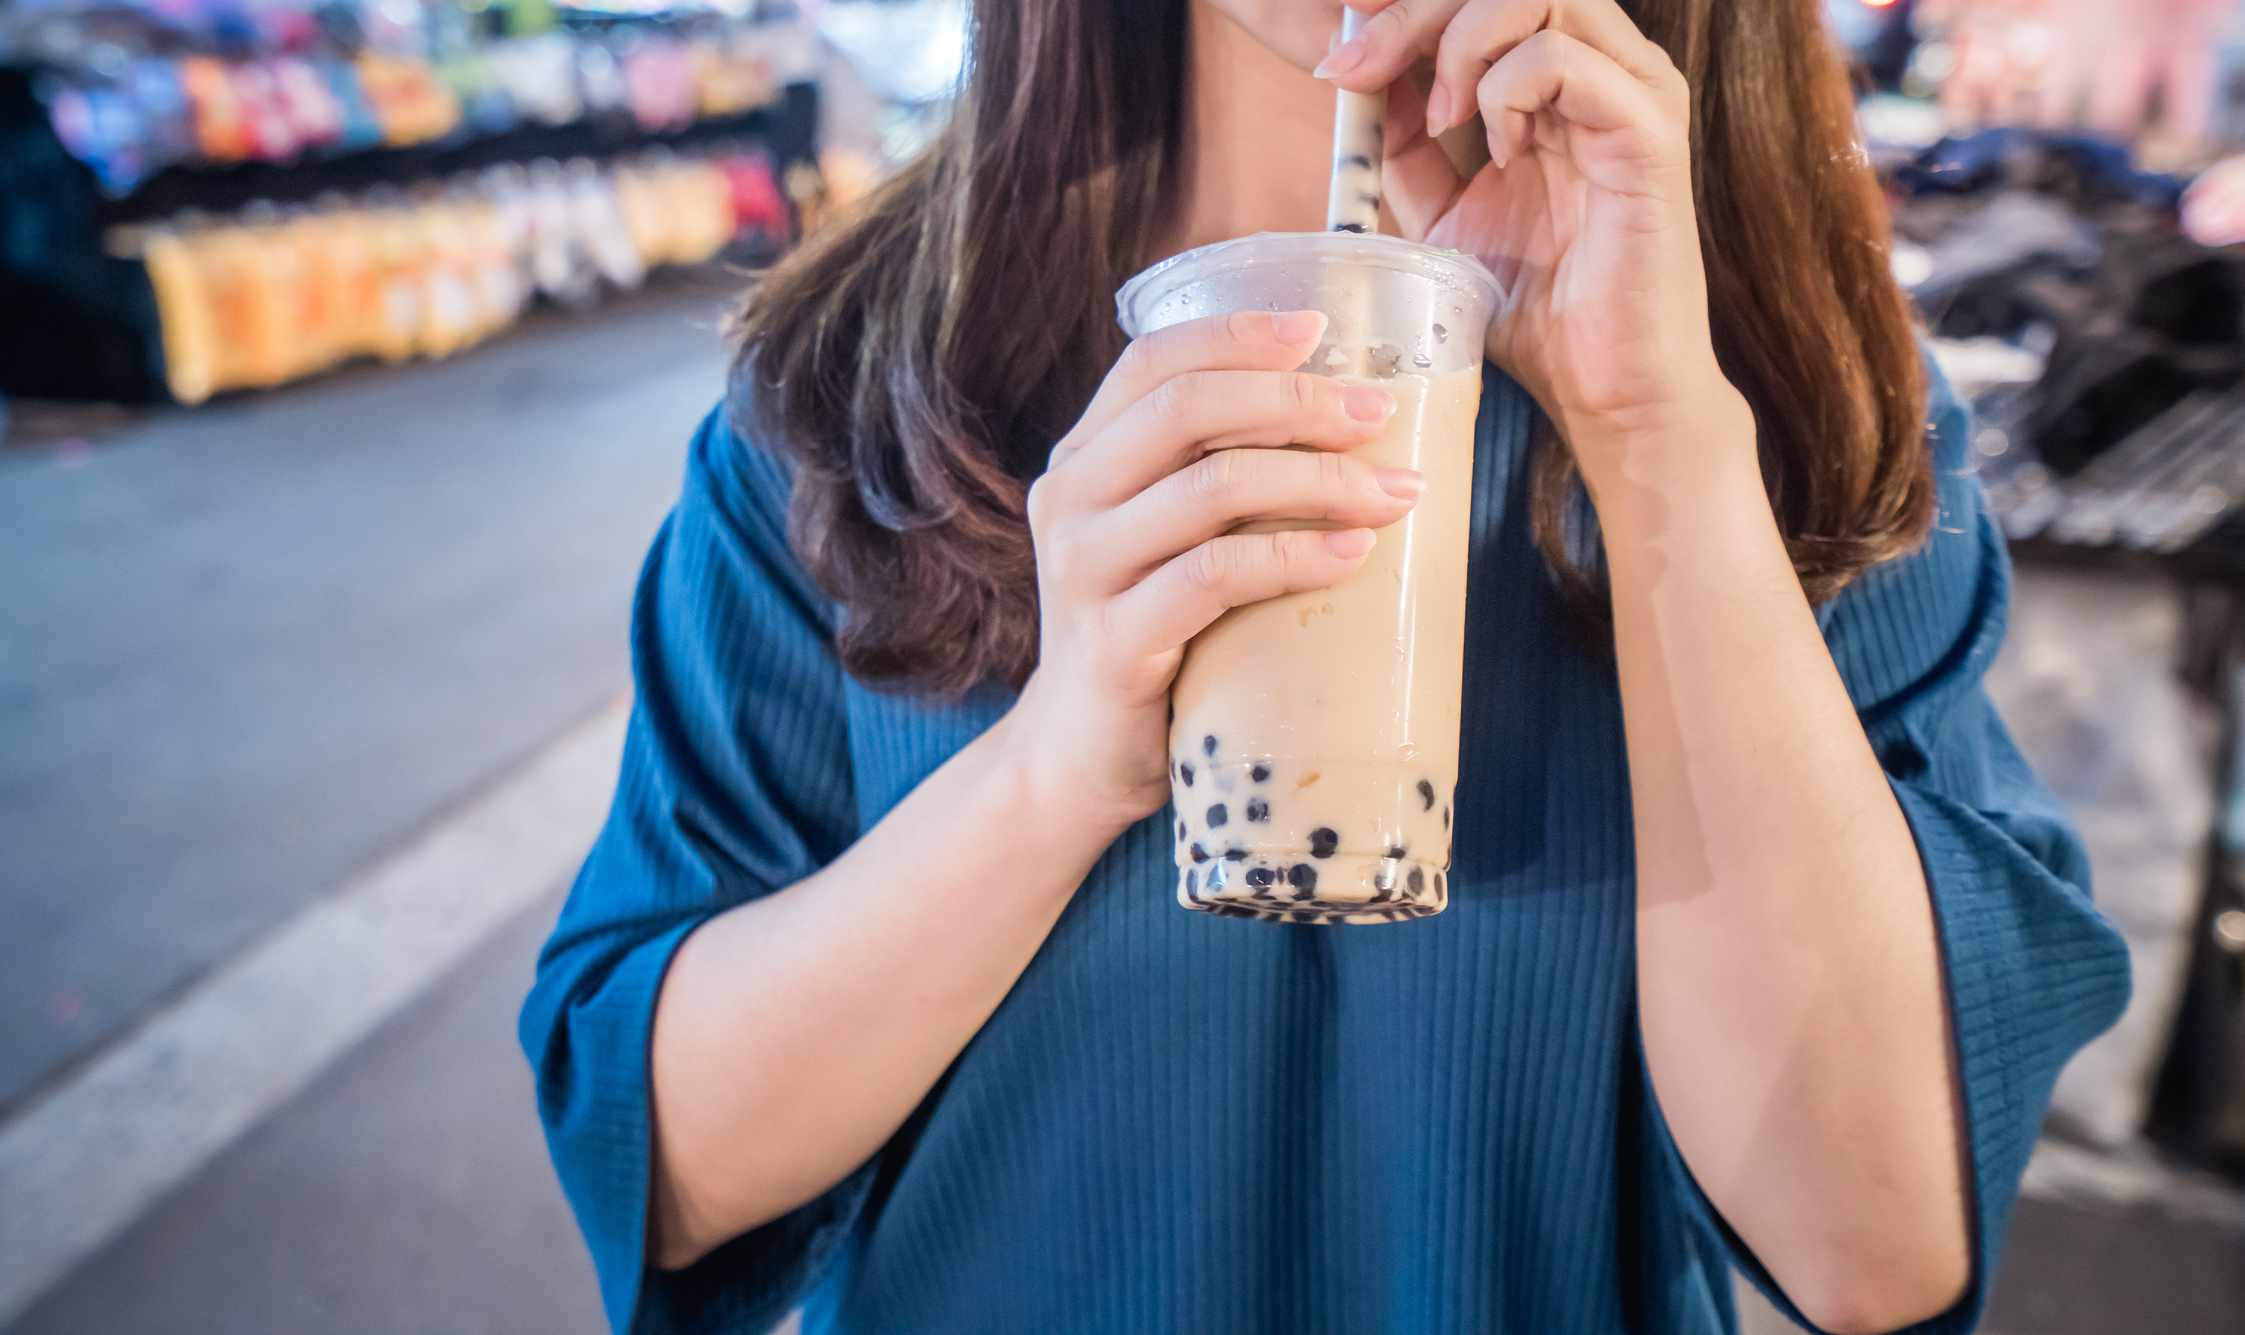 A young woman is drinking a plastic cup of bubble milk tea with a straw at a night market in Taiwan, Taiwan delicacy, close up.